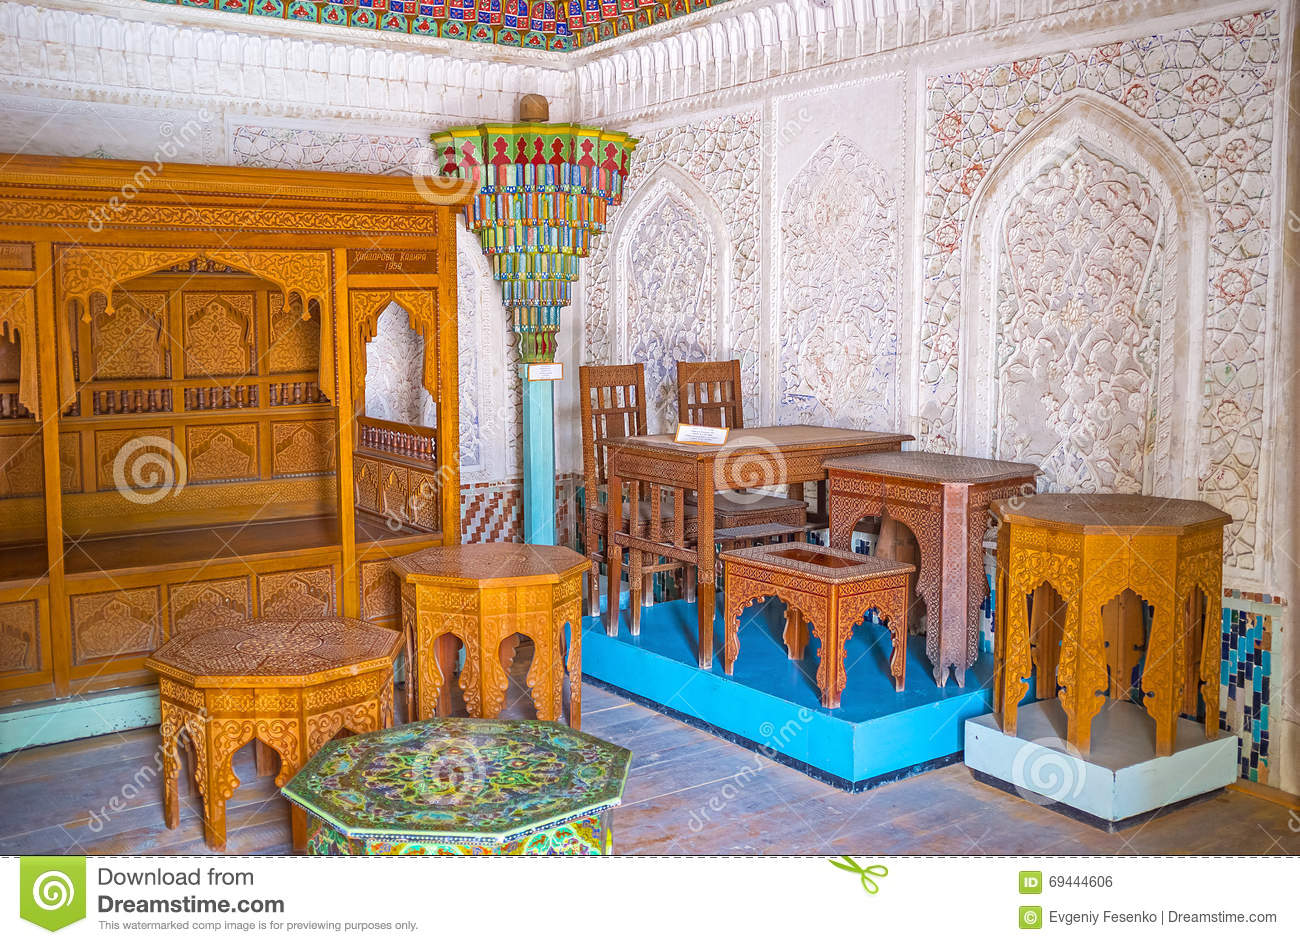 The Uzbek Art In Kokand Editorial Image.